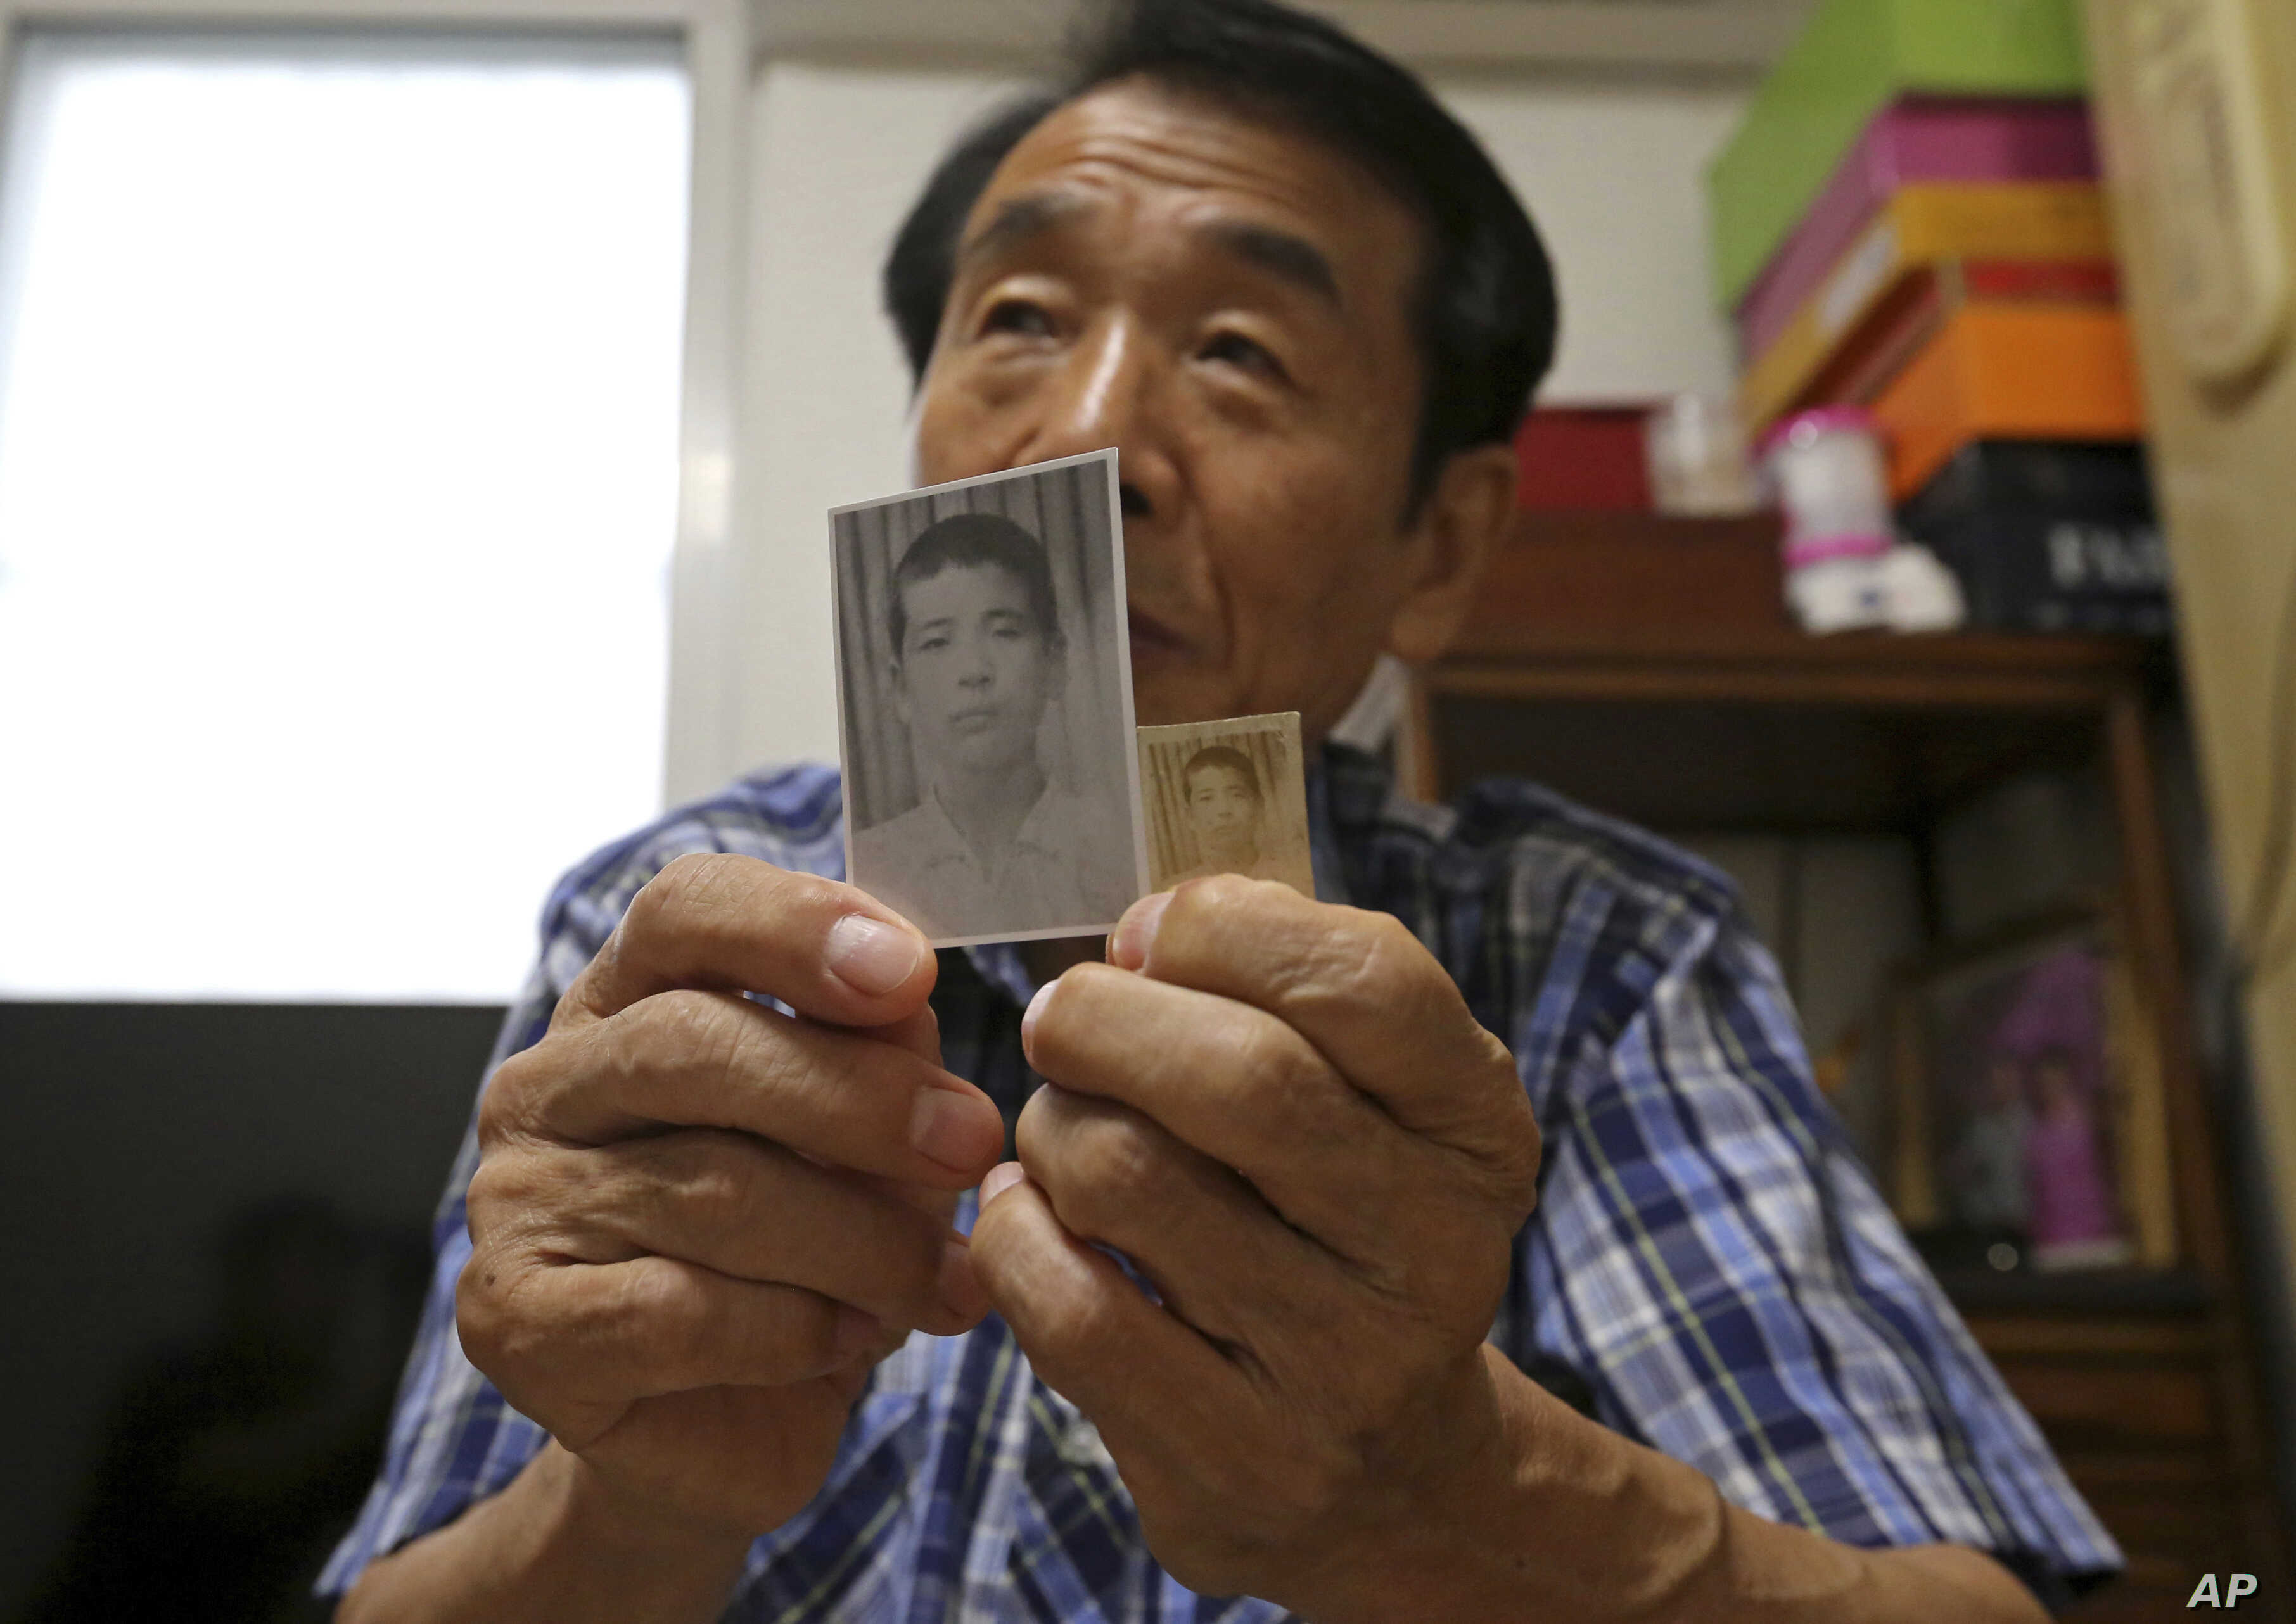 Lee Soo-nam, 76, shows photos of his brother Ri Jong Song in North Korea during an interview at his home in Seoul, South Korea, Aug. 17, 2018. Starting Monday, Lee will join about 200 war-separated South Koreans and their family members who are cross...